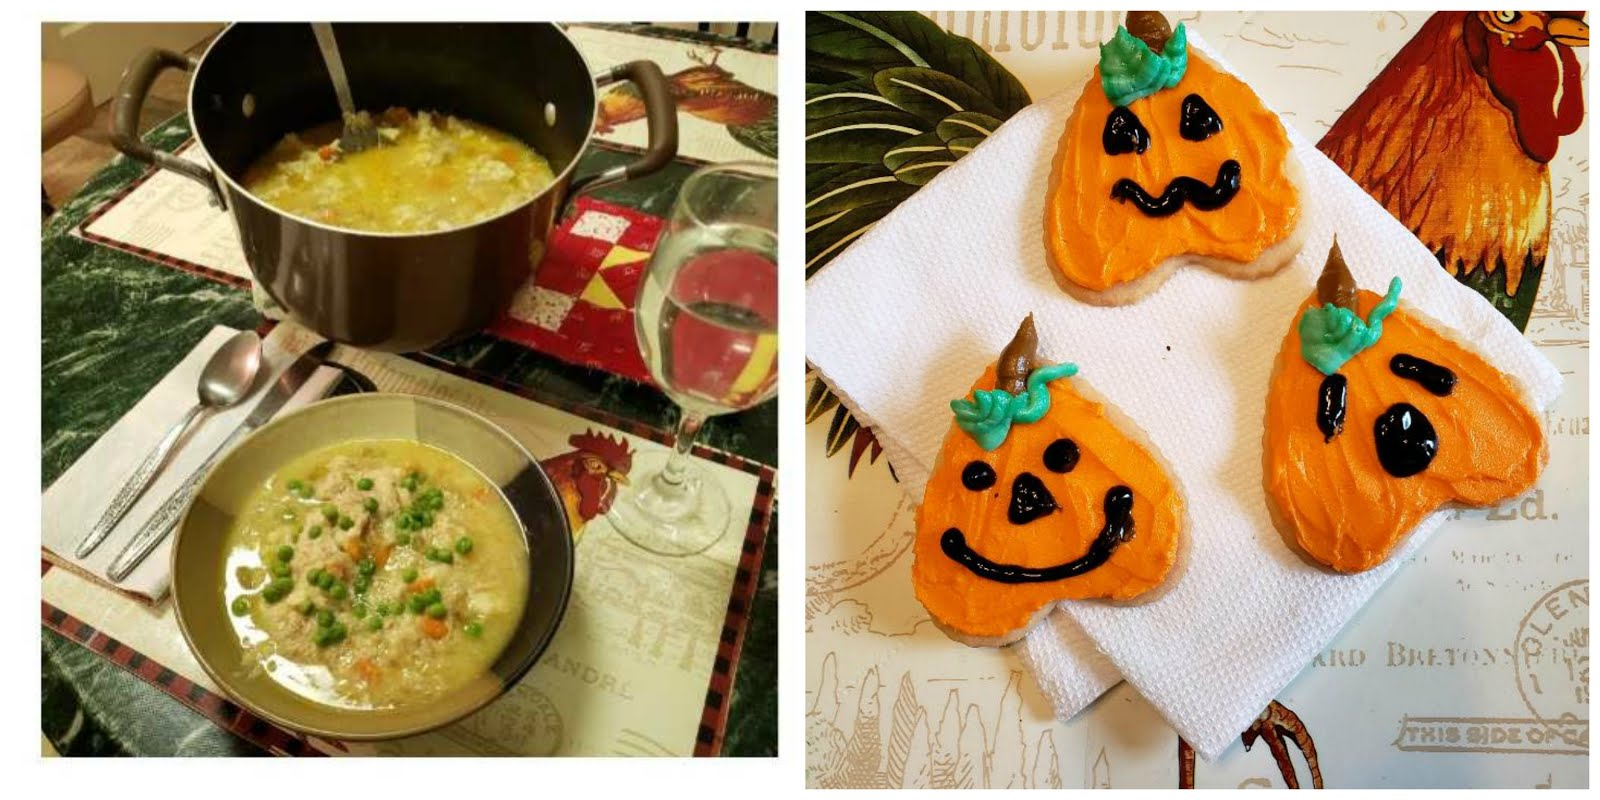 COOKING WITH CYNTHIA... OCTOBER 24th 10:30- 12:30 $35